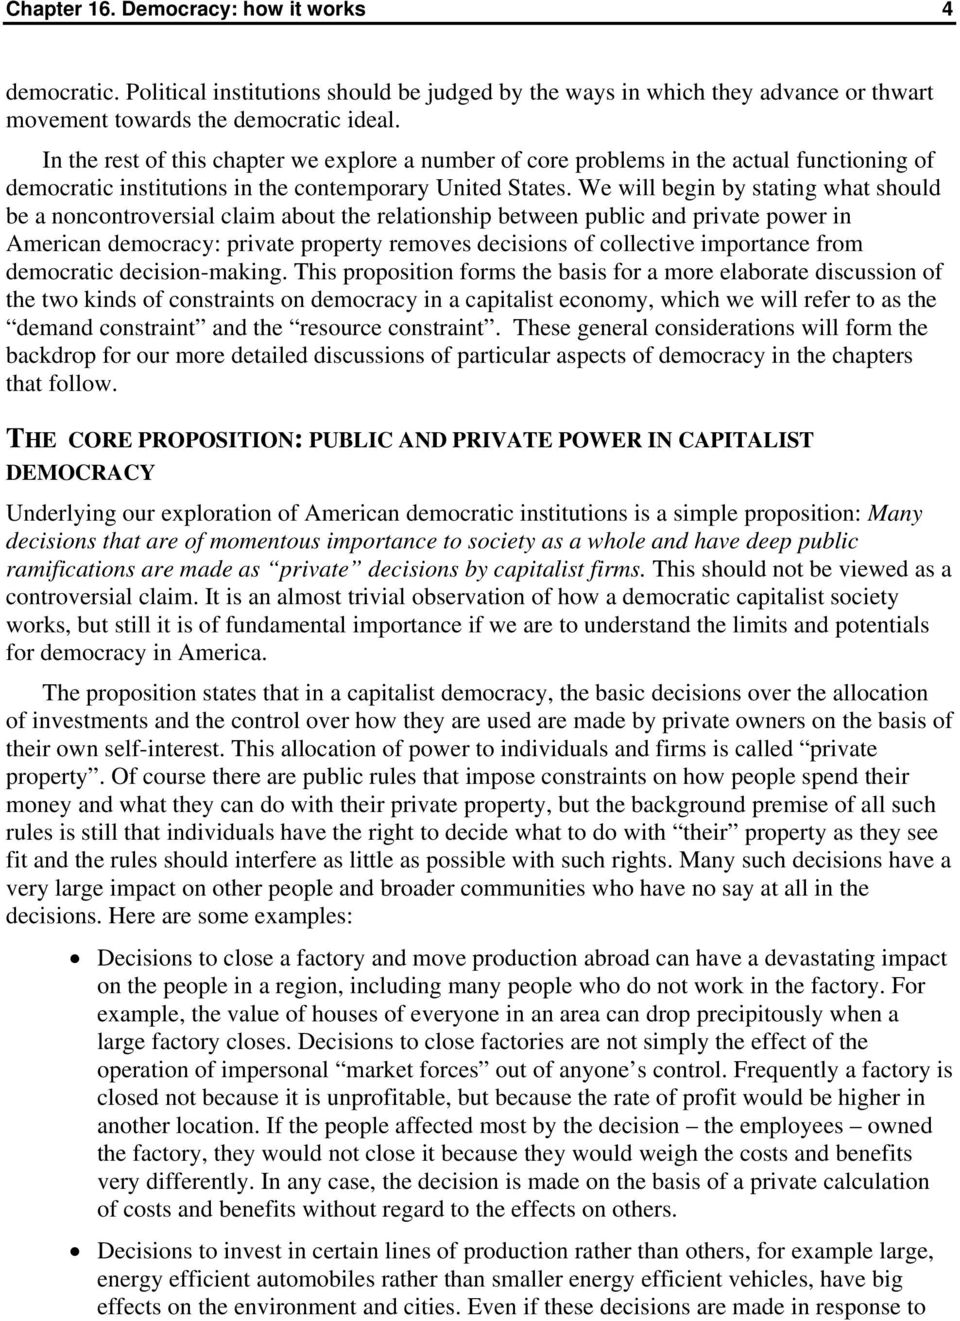 We will begin by stating what should be a noncontroversial claim about the relationship between public and private power in American democracy: private property removes decisions of collective